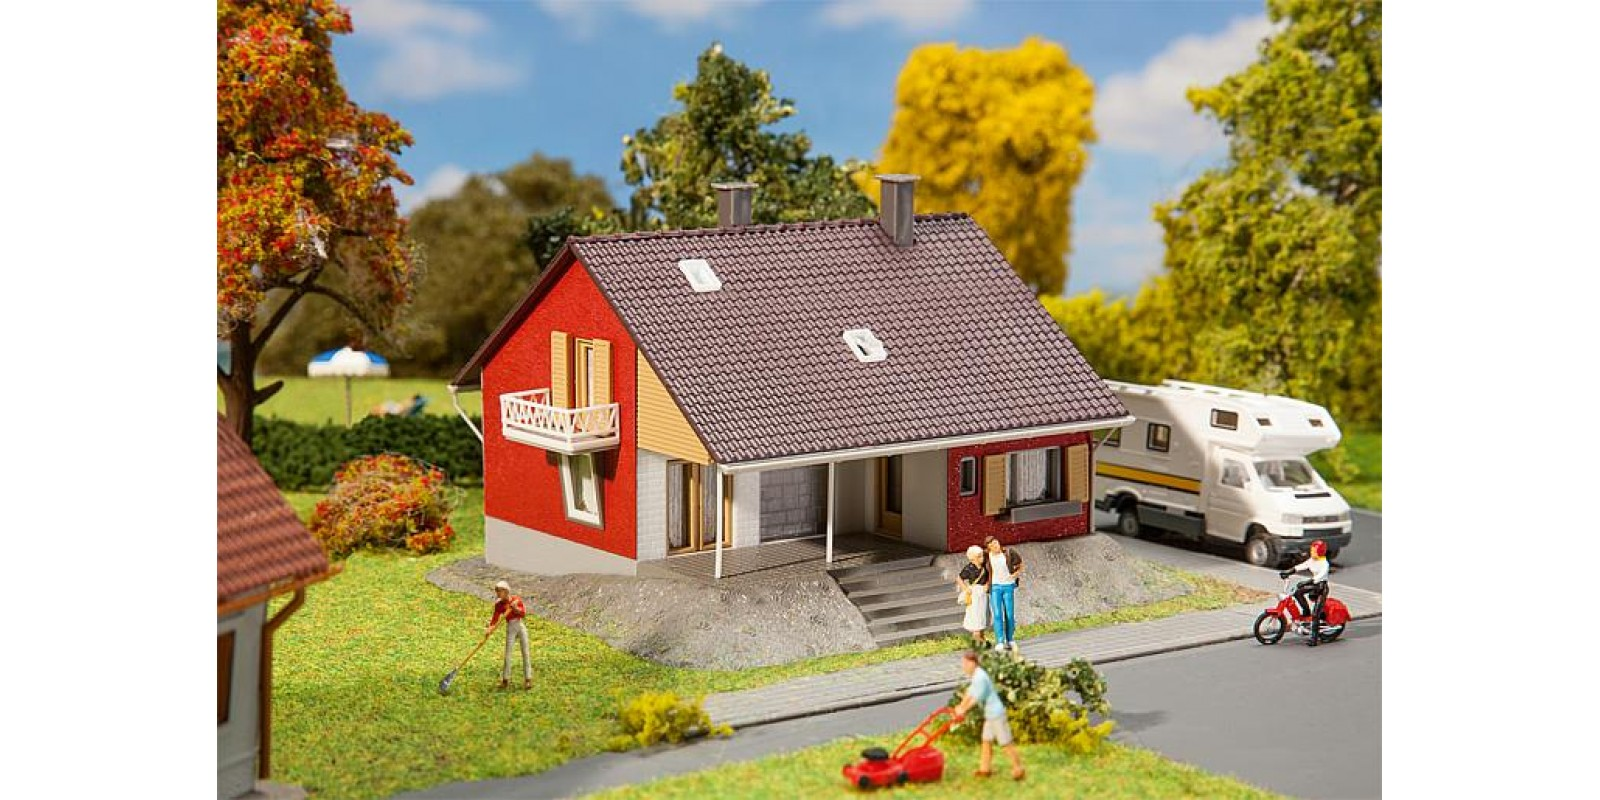 FA131355 One-family house with terrace